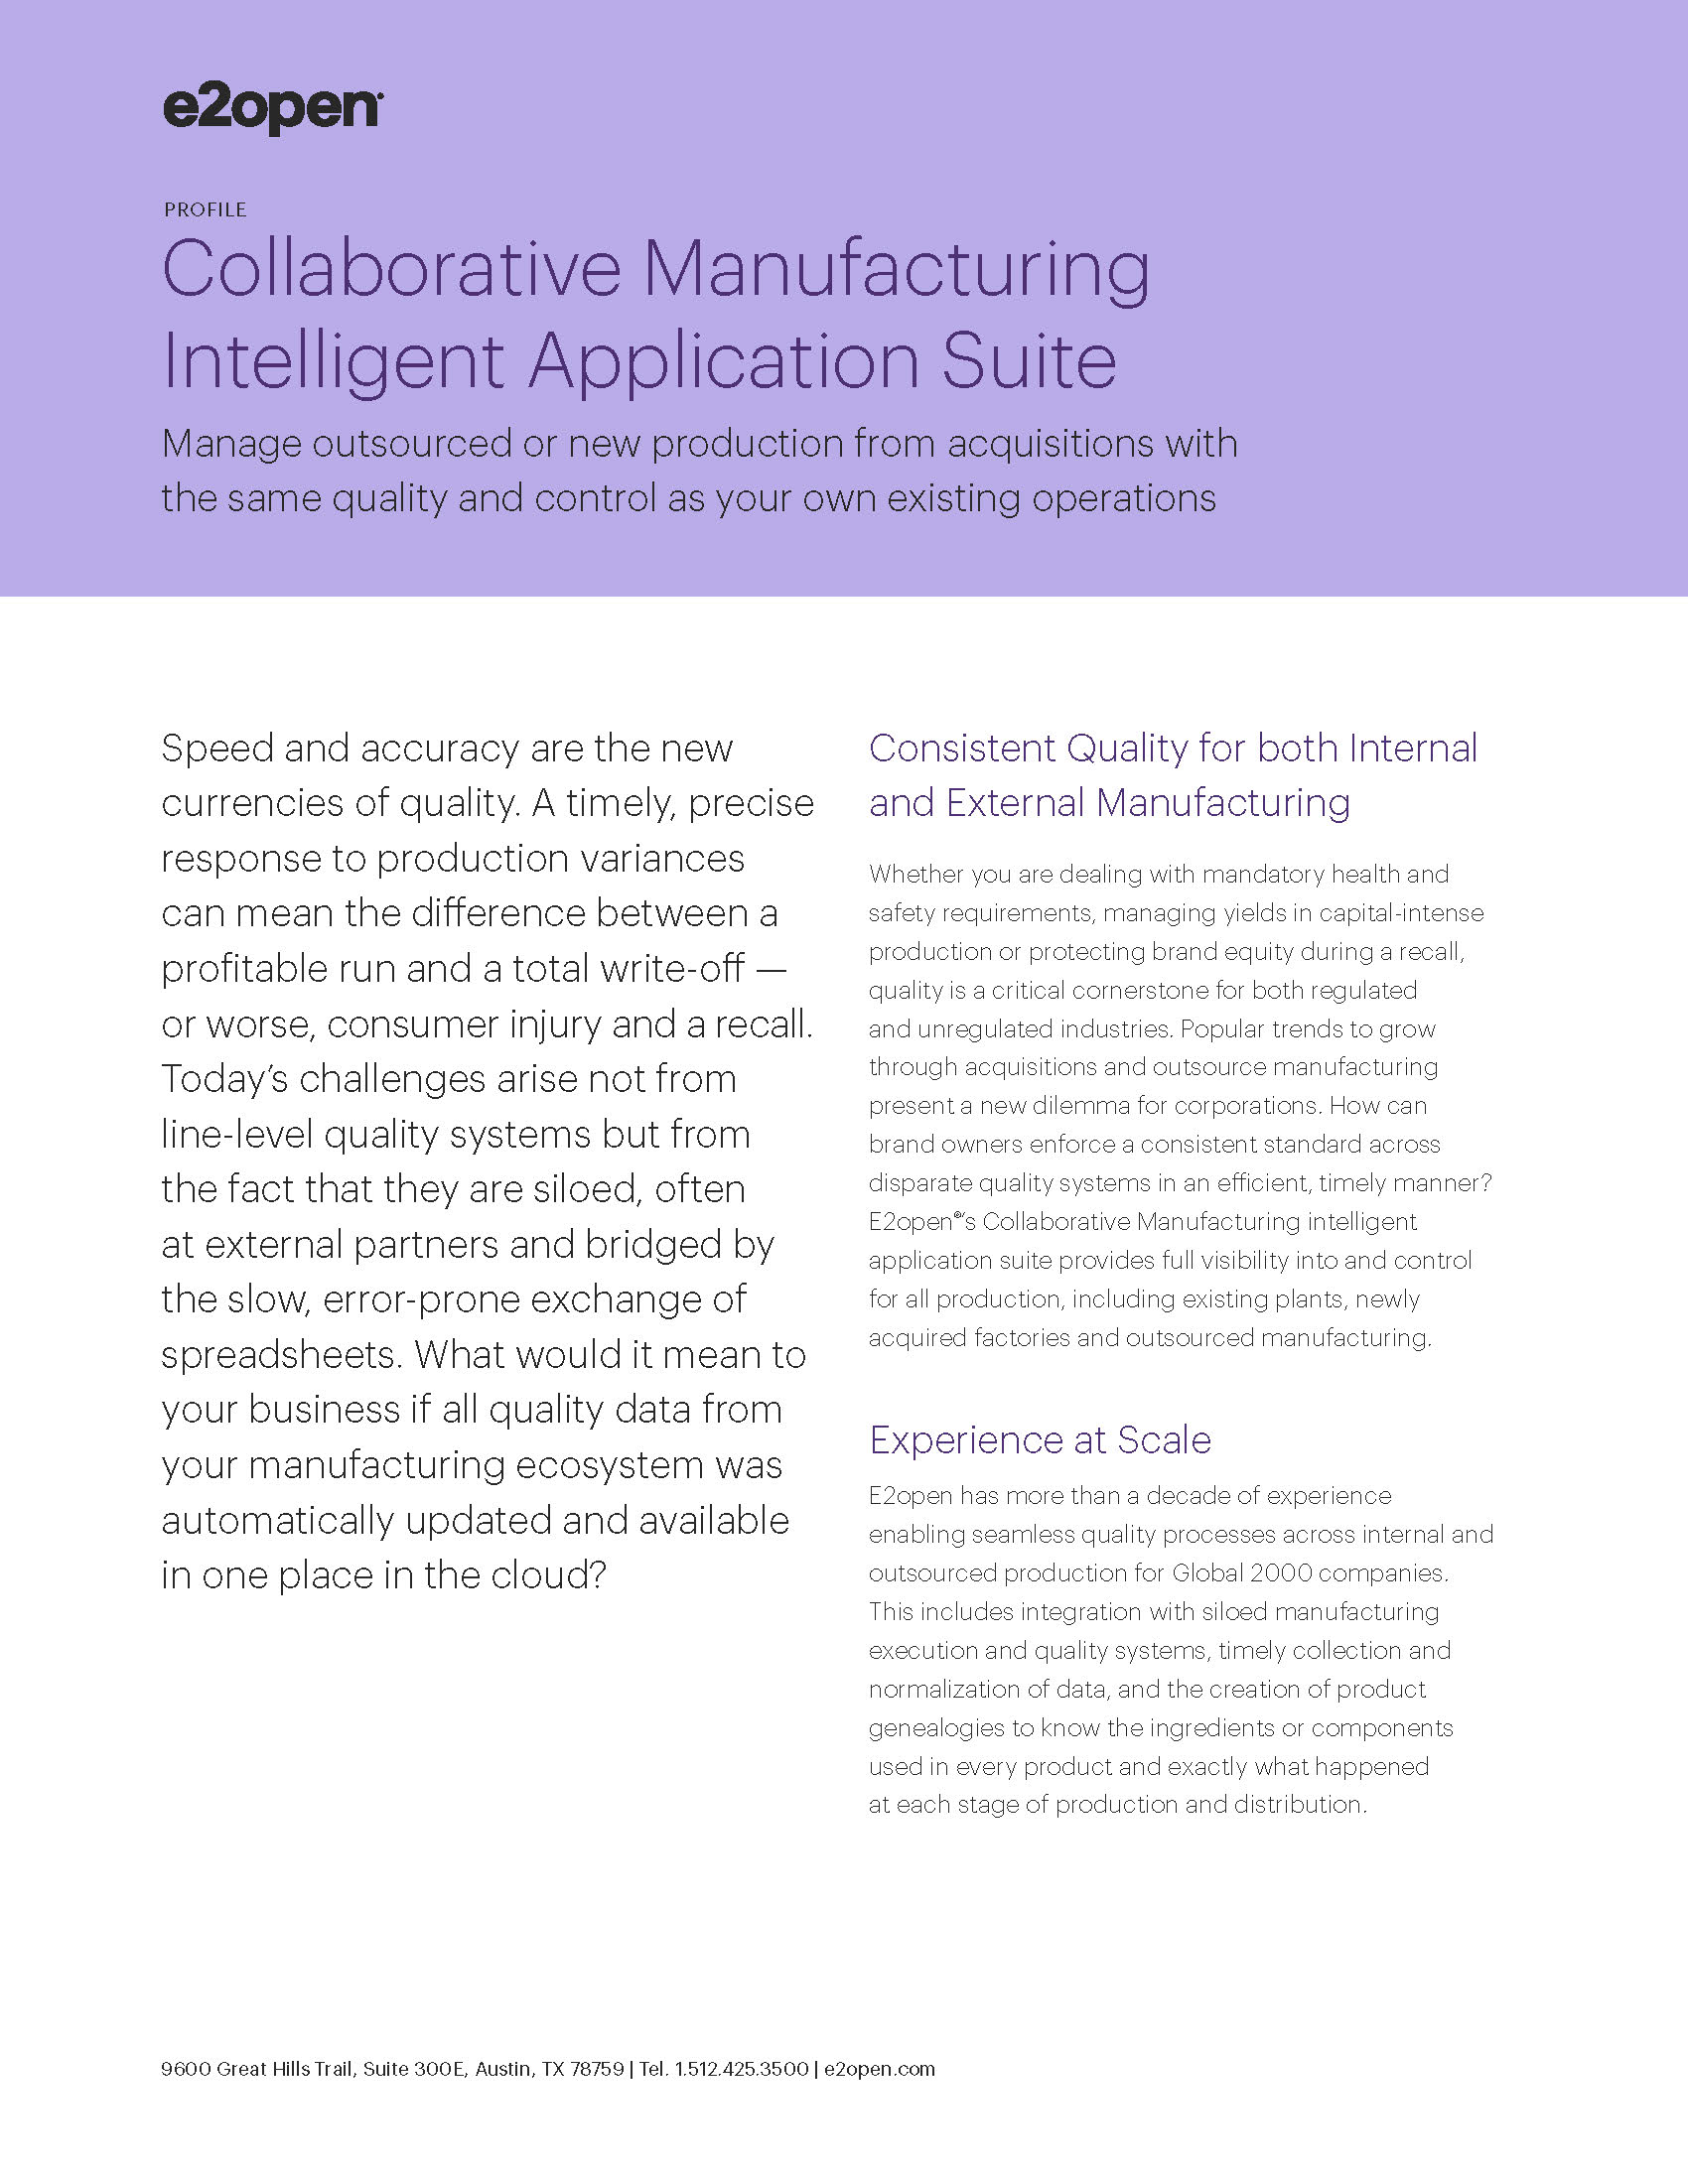 Collaborative Manufacturing Intelligent Application Suite Profile